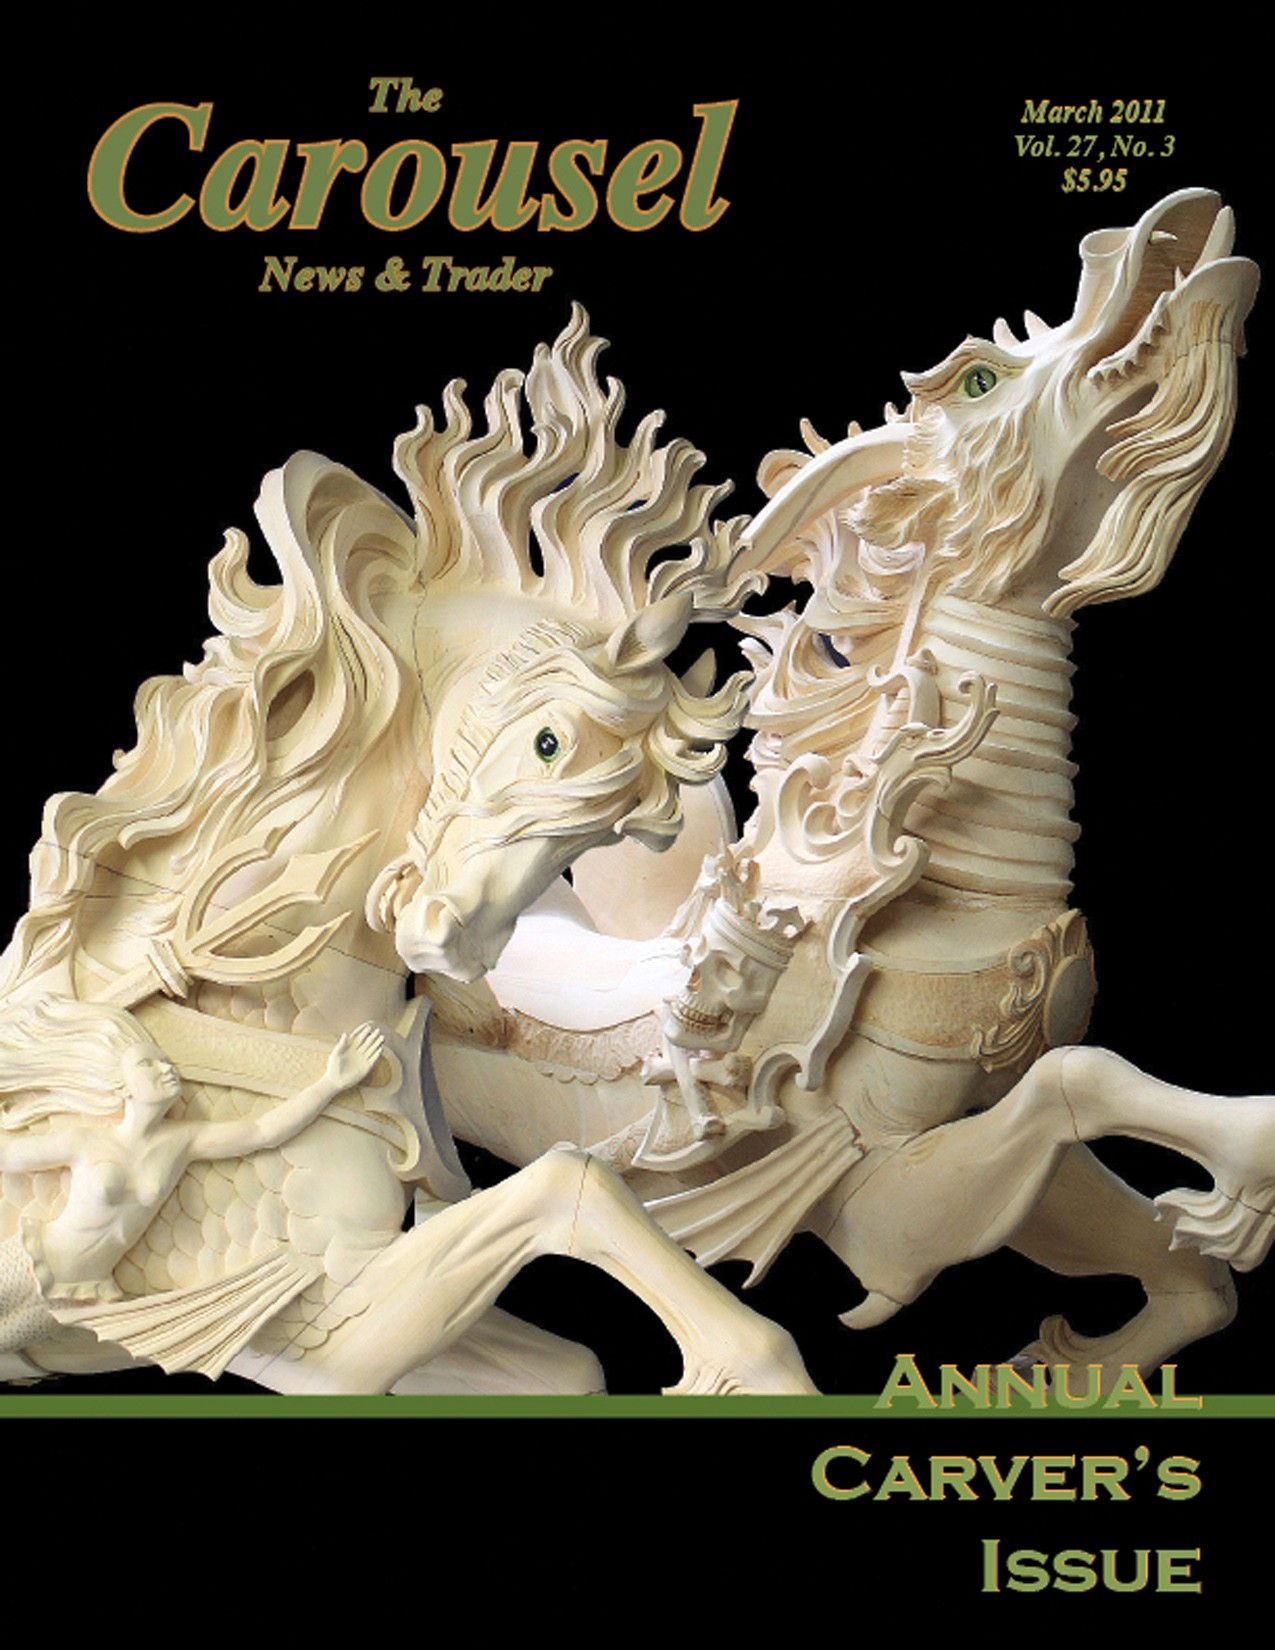 Carousel-news-cover-3-Ed-Roth-carousel-carvings-March-2011